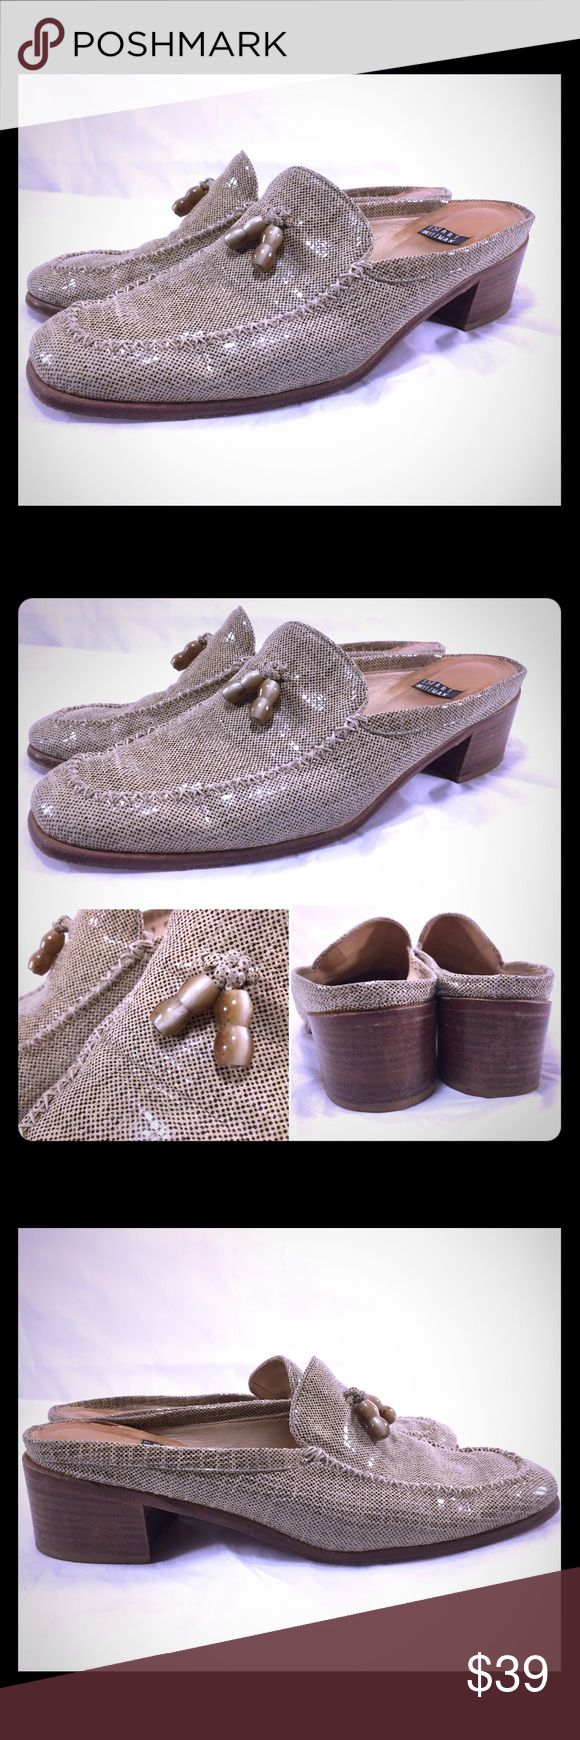 "STUART WEITZMAN Shiny Metallic/Khaki Mules STUART WEITZMAN Shiny Metallic/Khaki Mules with Tassel Detail. 9M. Originally $198. Heel measures 2.25"". Moderate wear to insole, and sole. Heels show some wear but looks nice overall. Upper looks fabulous. Stuart Weitzman Shoes Mules & Clogs"